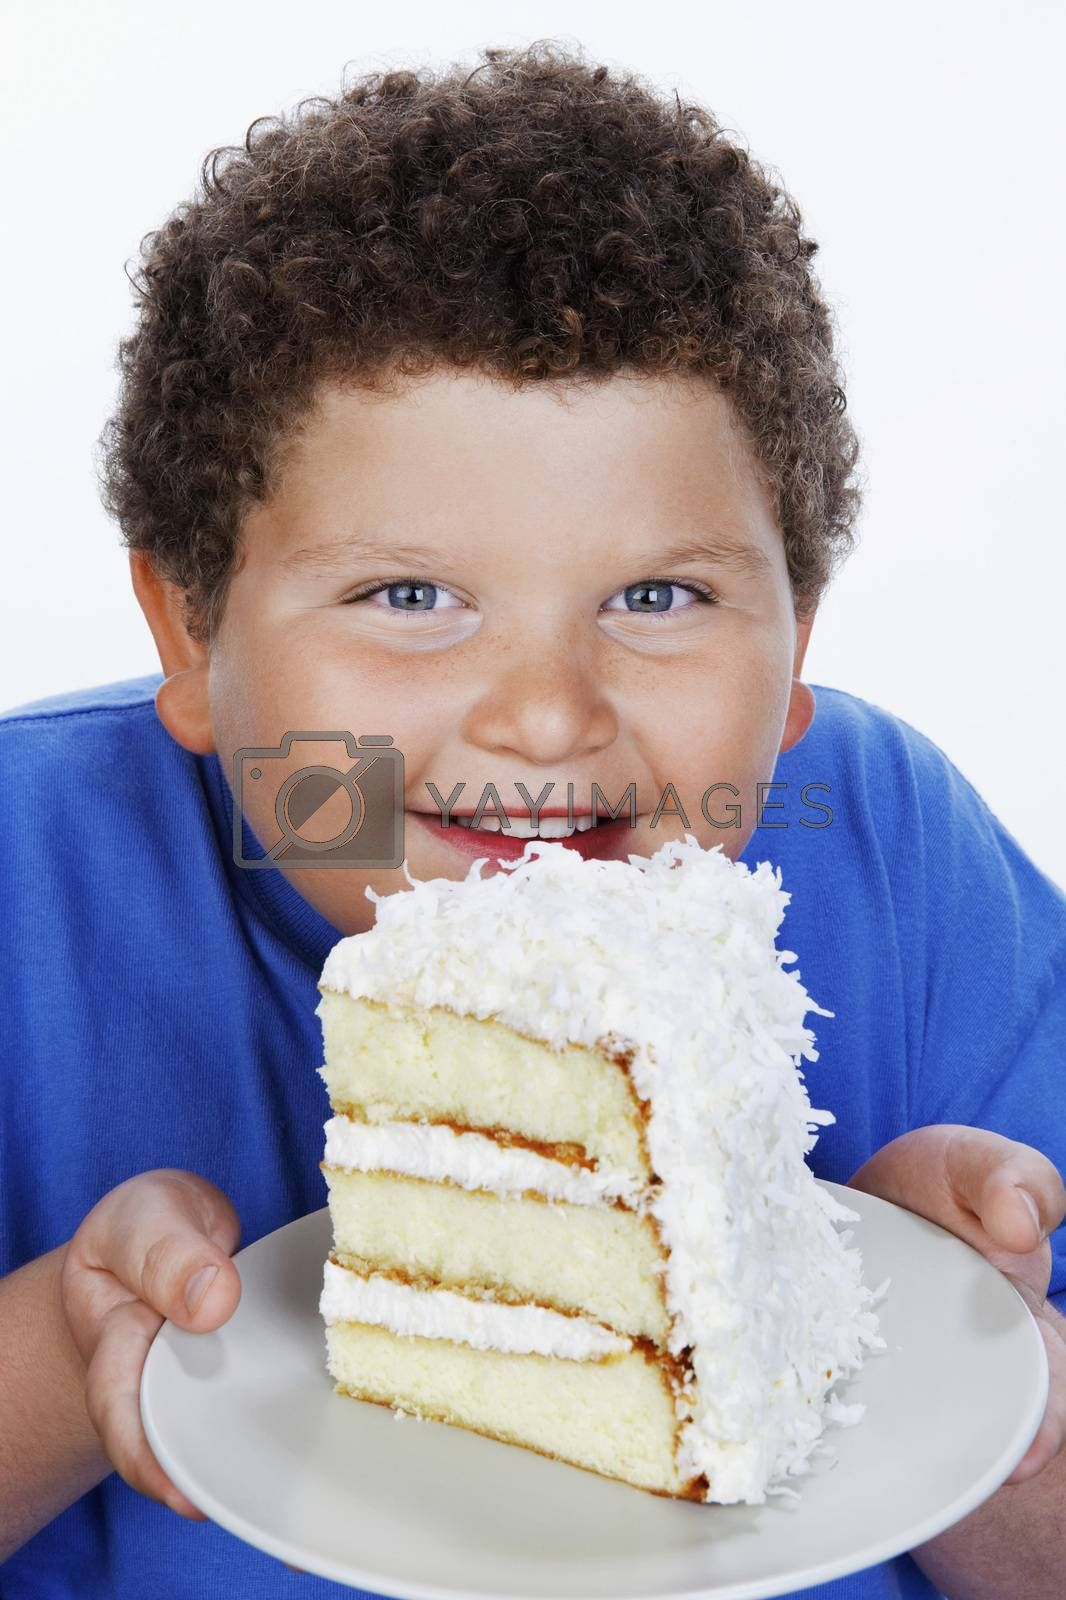 Royalty free image of Overweight boy (13-15) holding Large Slice of Cake smiling portrait by moodboard